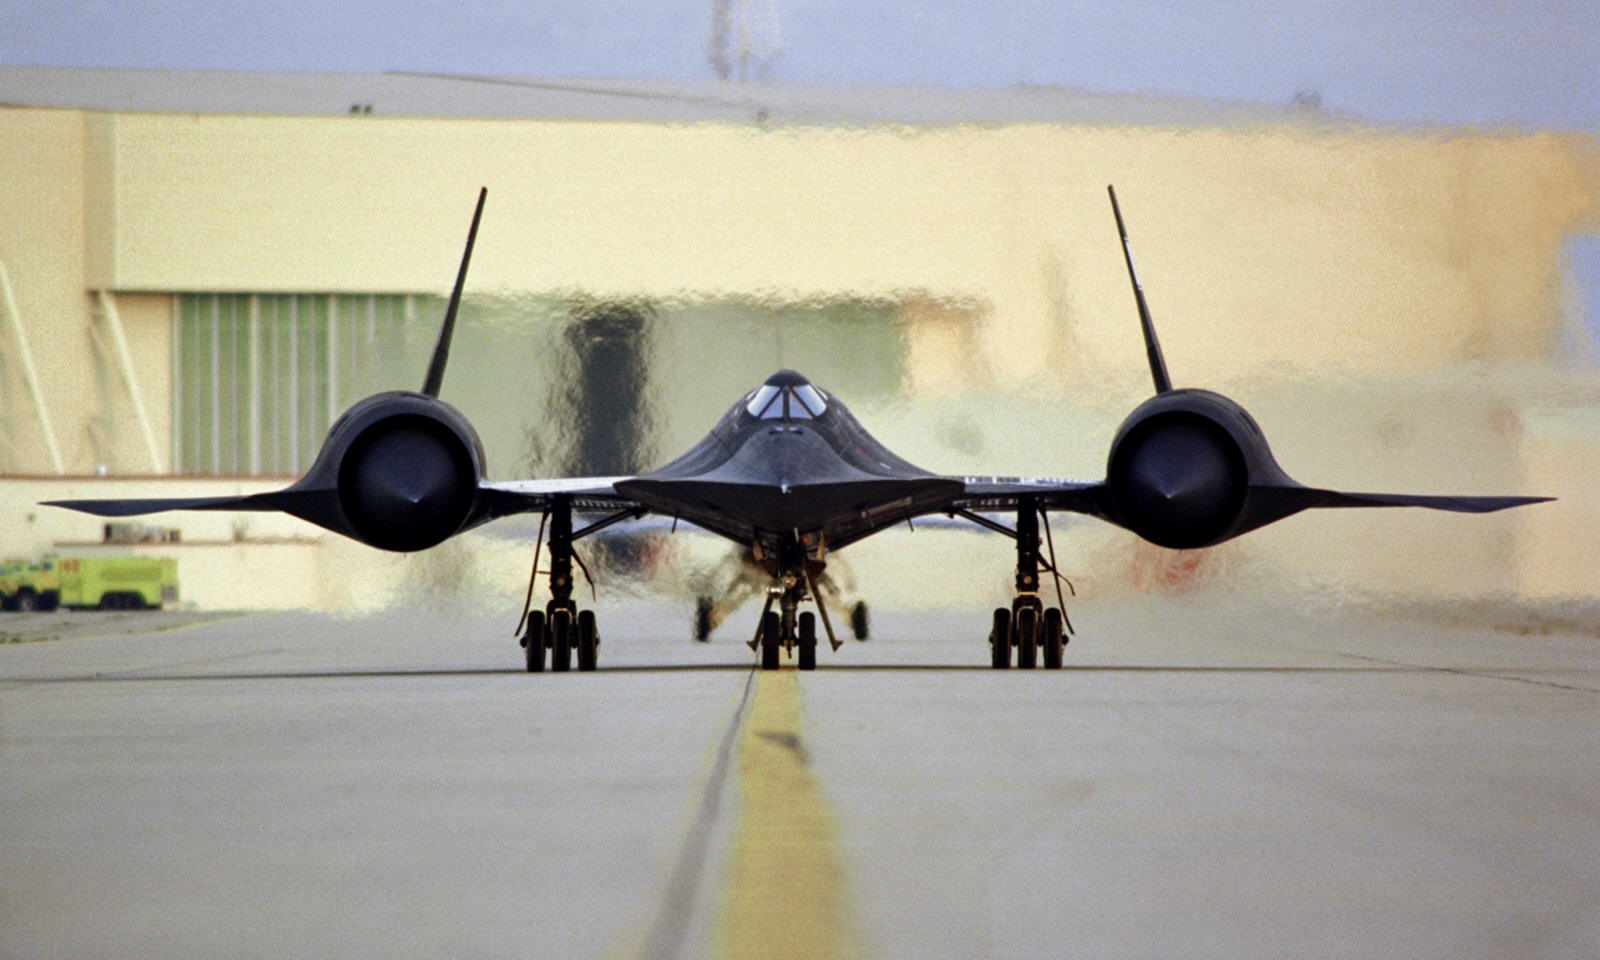 sr71 ground speed check